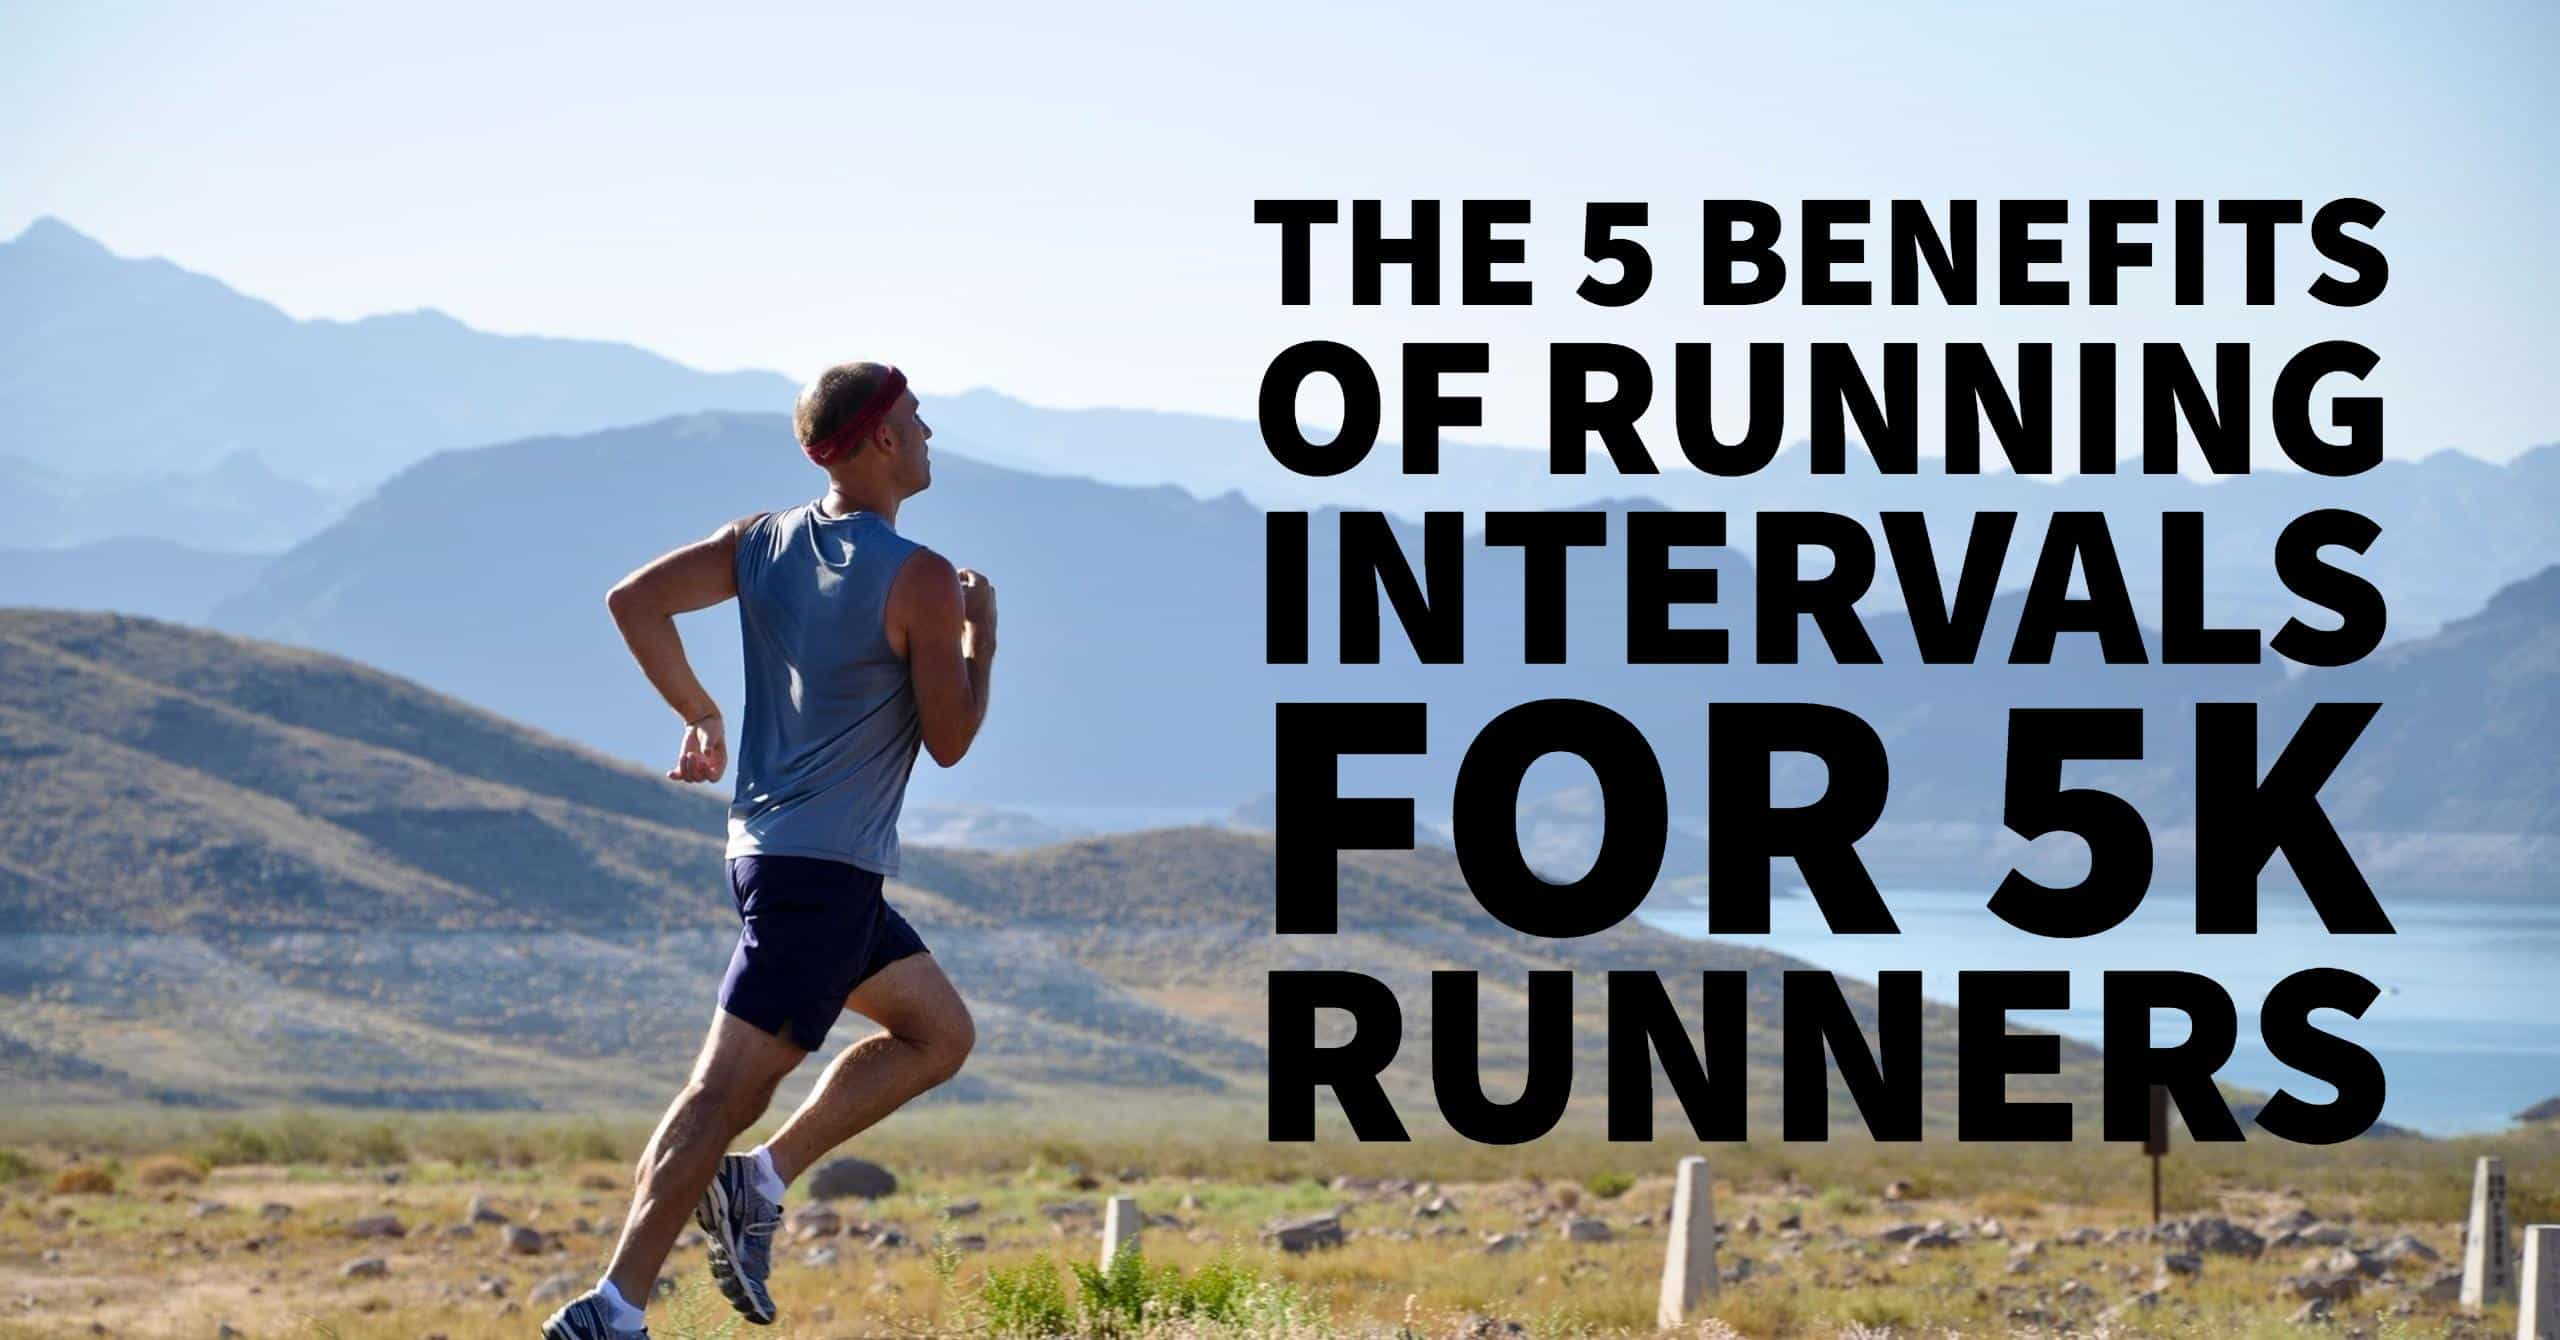 Running intervals during your 5K training can be the difference of PRing a race. We break down the 5 benefits of running intervals for 5K Runners